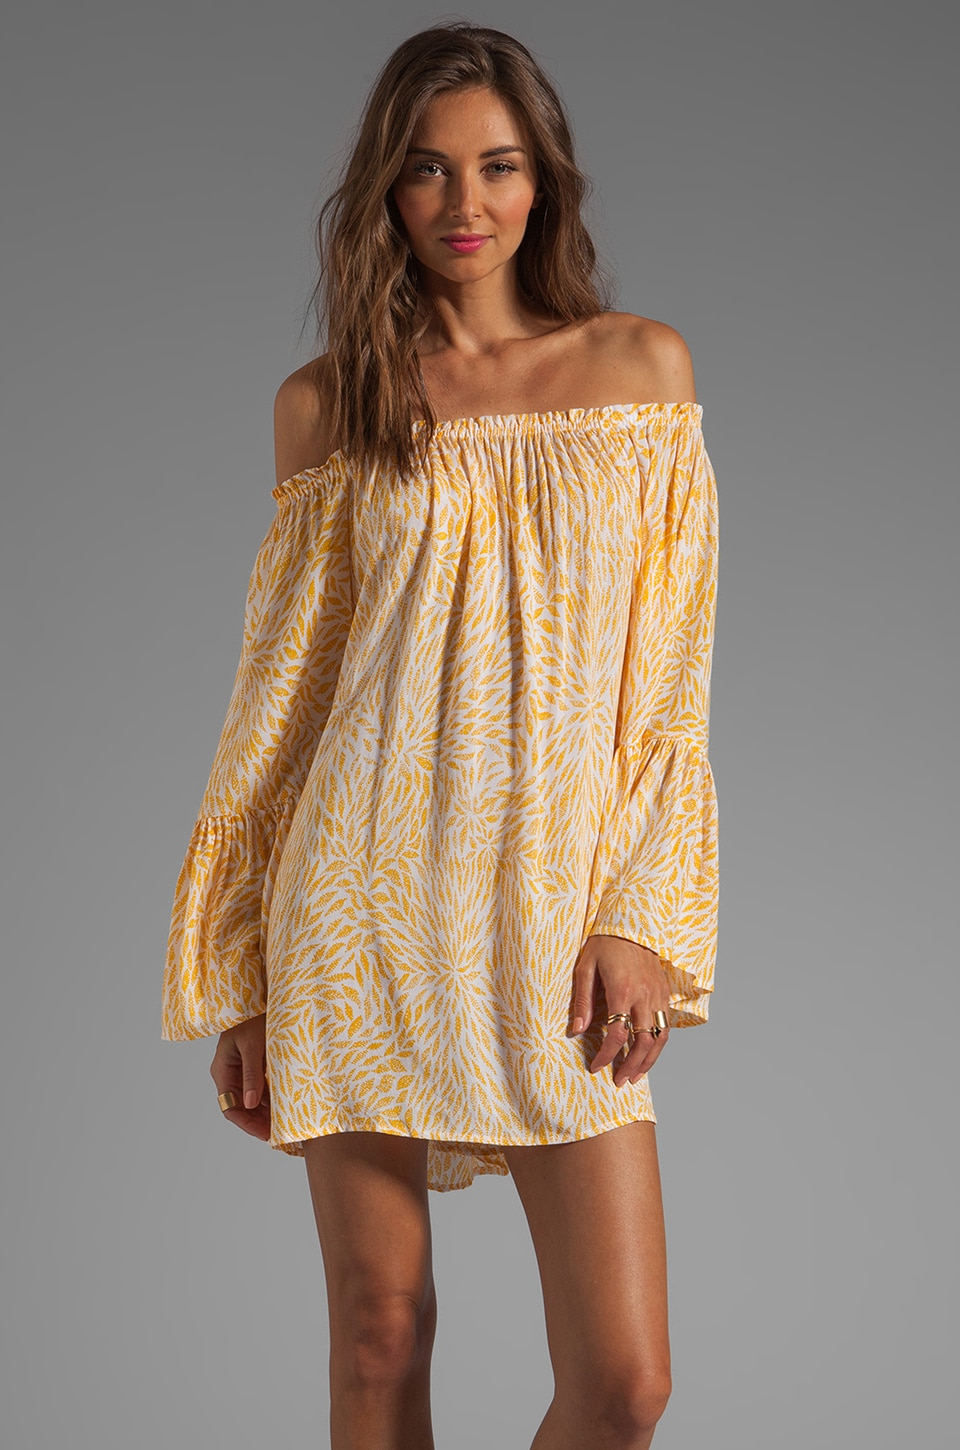 Indah Kamani Ruffle Edge Mini Dress in Padi Yellow